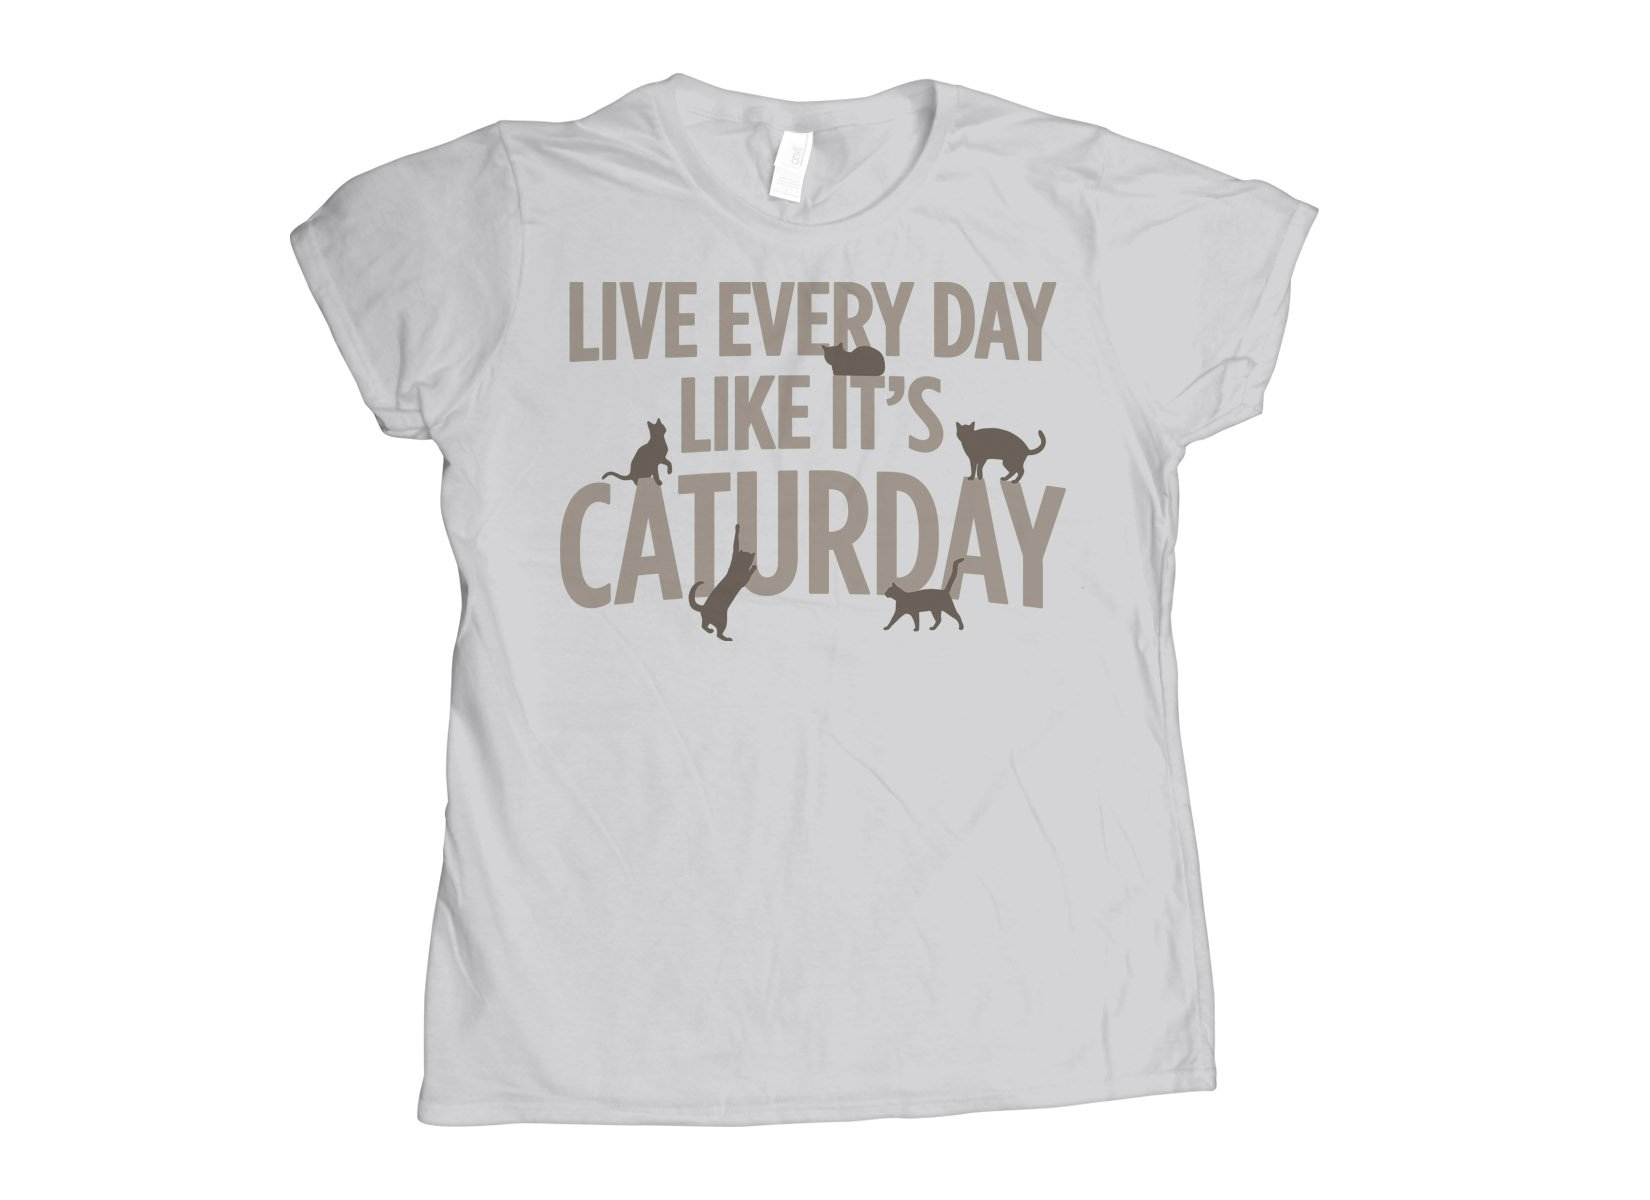 Live Every Day Like It's Caturday on Womens T-Shirt